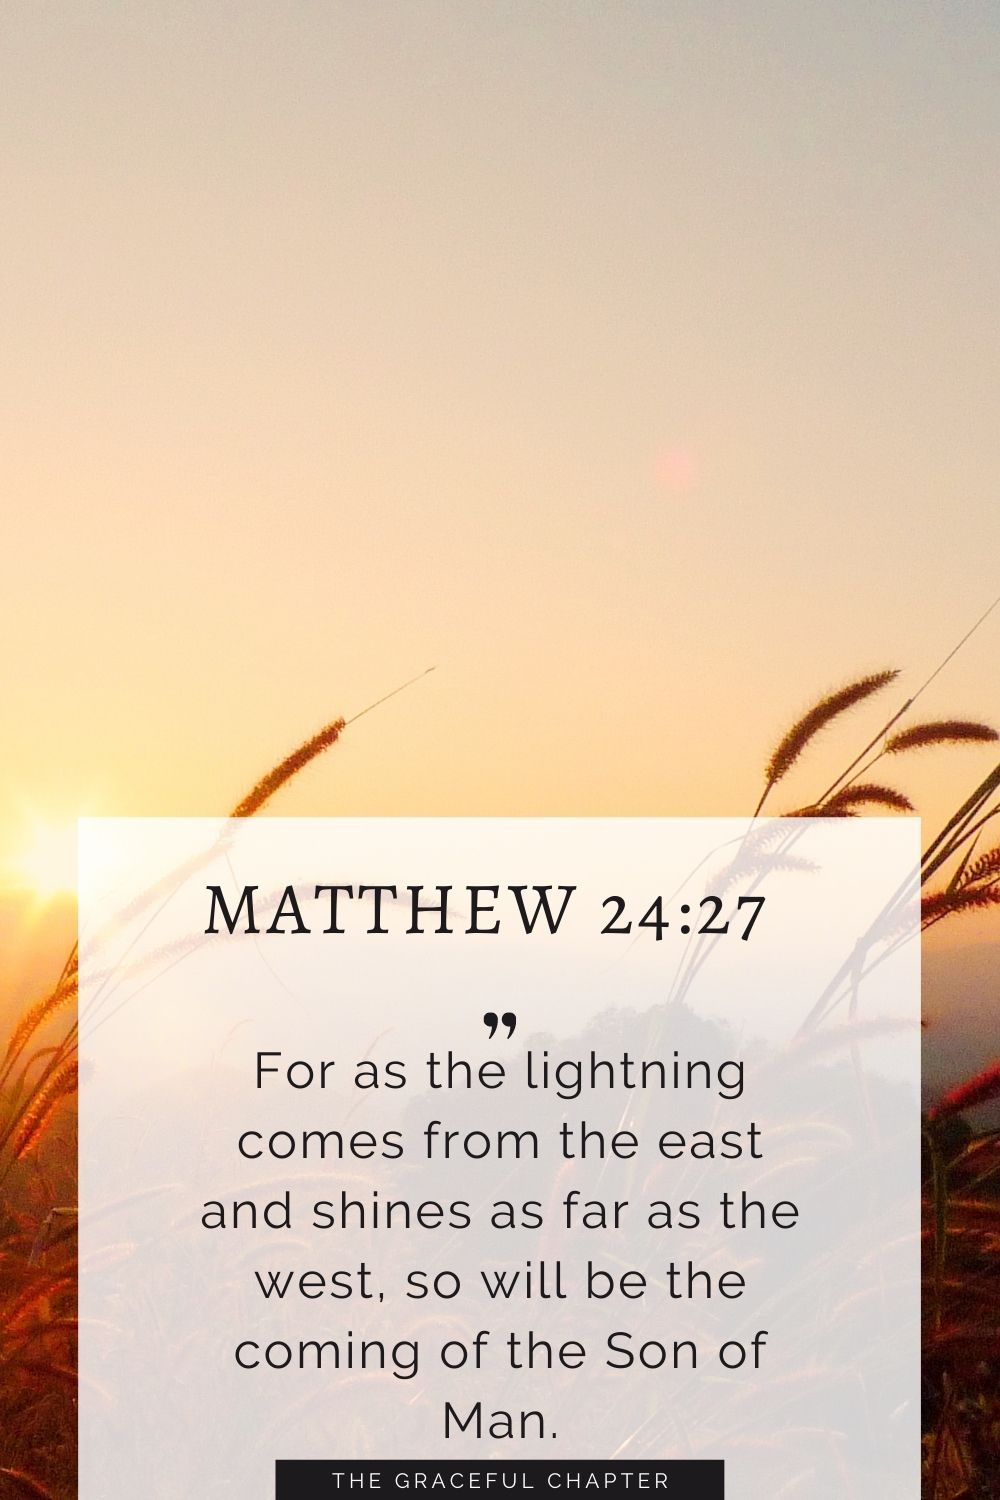 For as the lightning comes from the east and shines as far as the west, so will be the coming of the Son of Man. Matthew 24:27